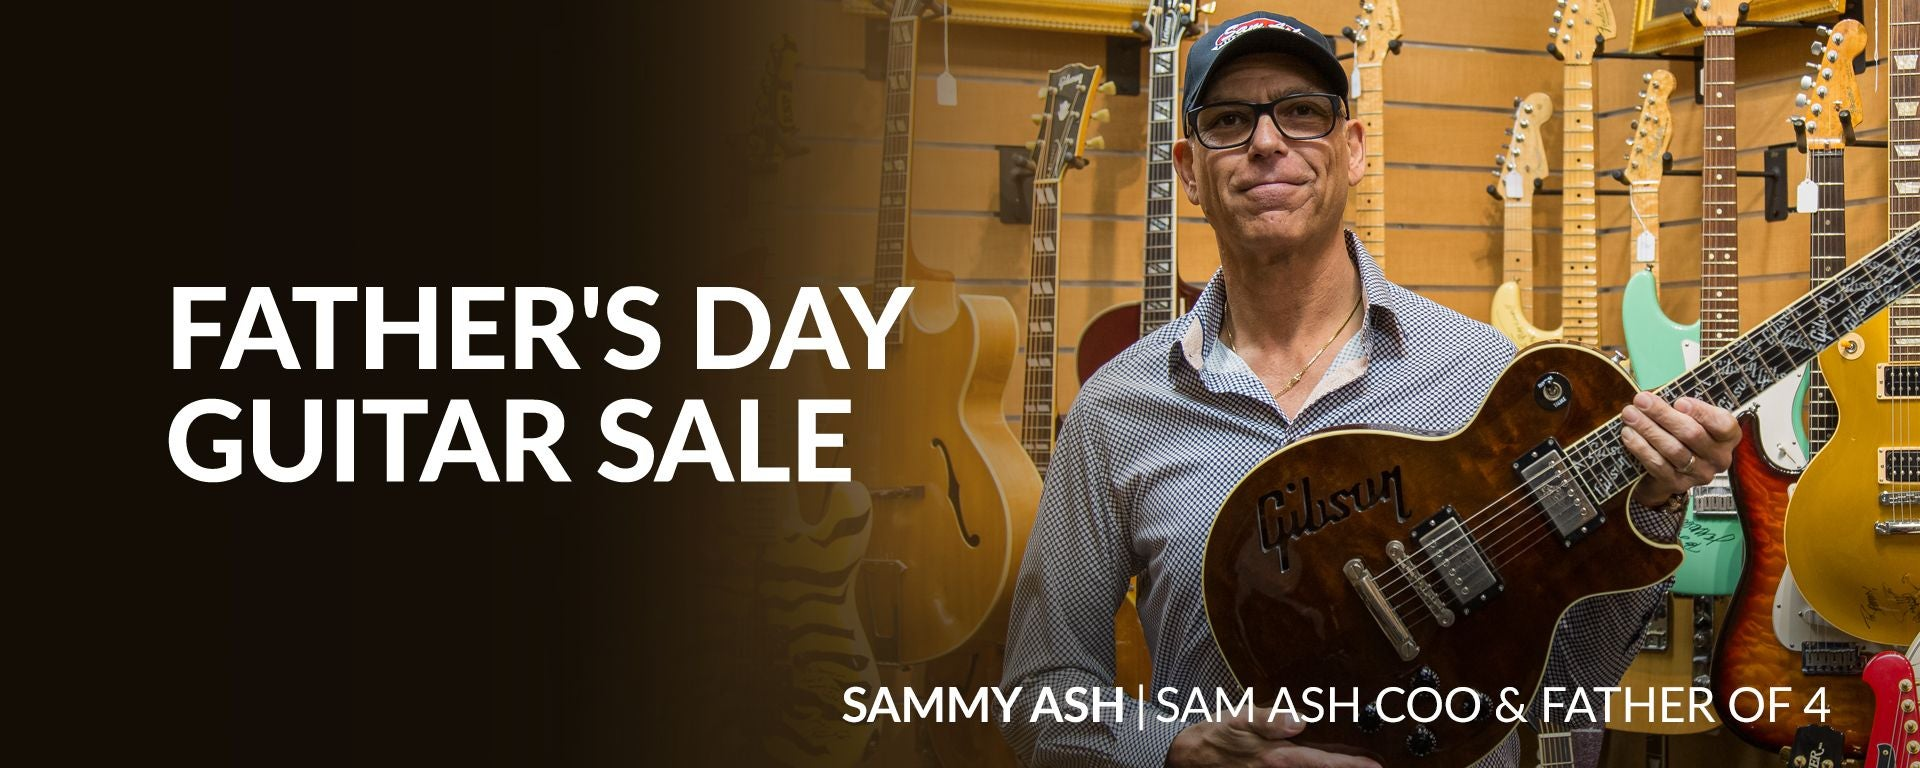 Father's Day Guitar Sale With Sammy Ash